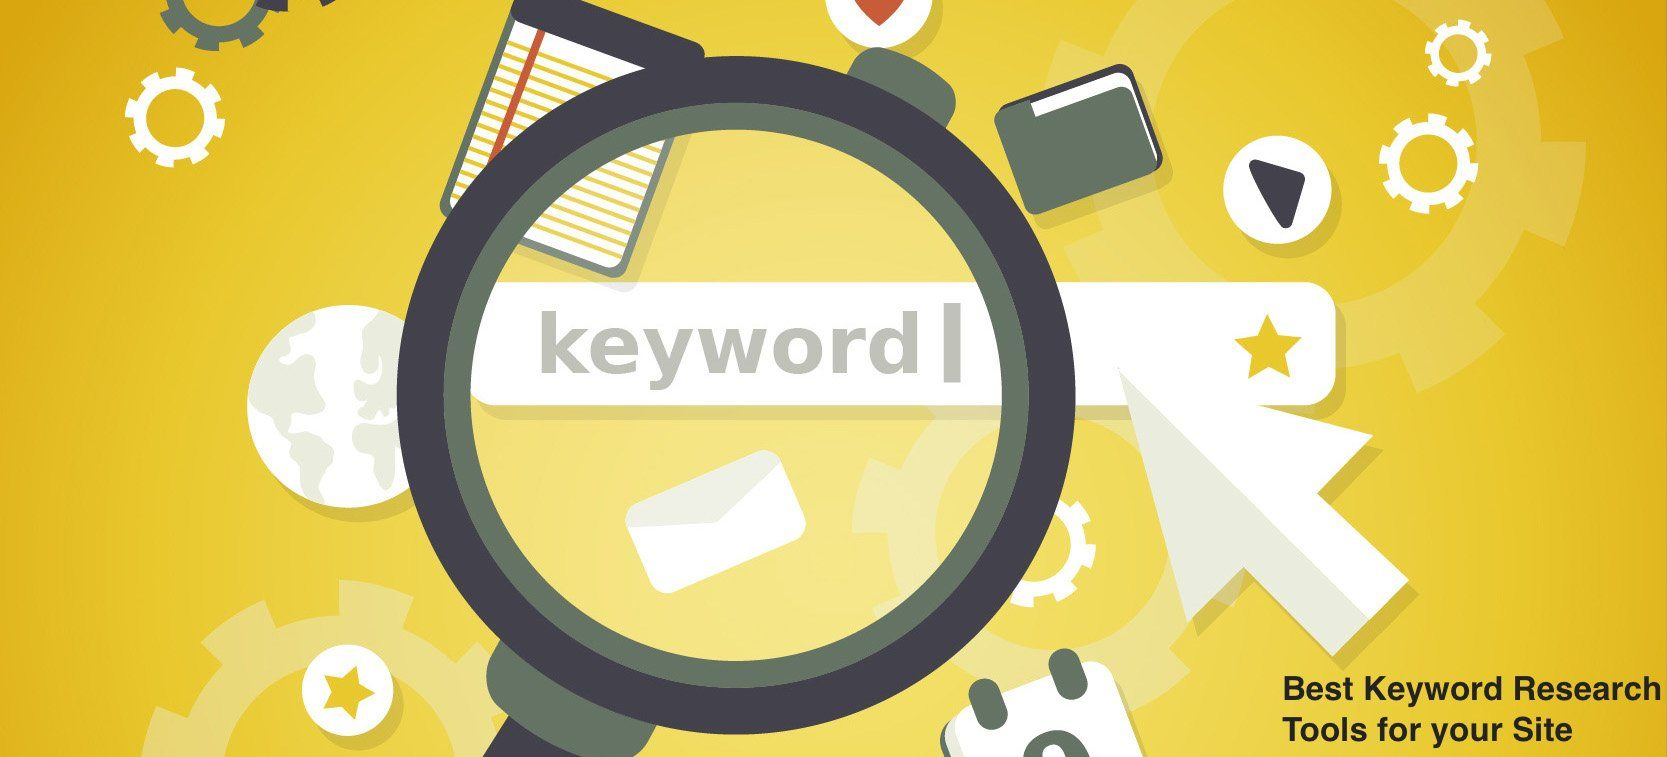 Best Keyword Research Tools for your Site